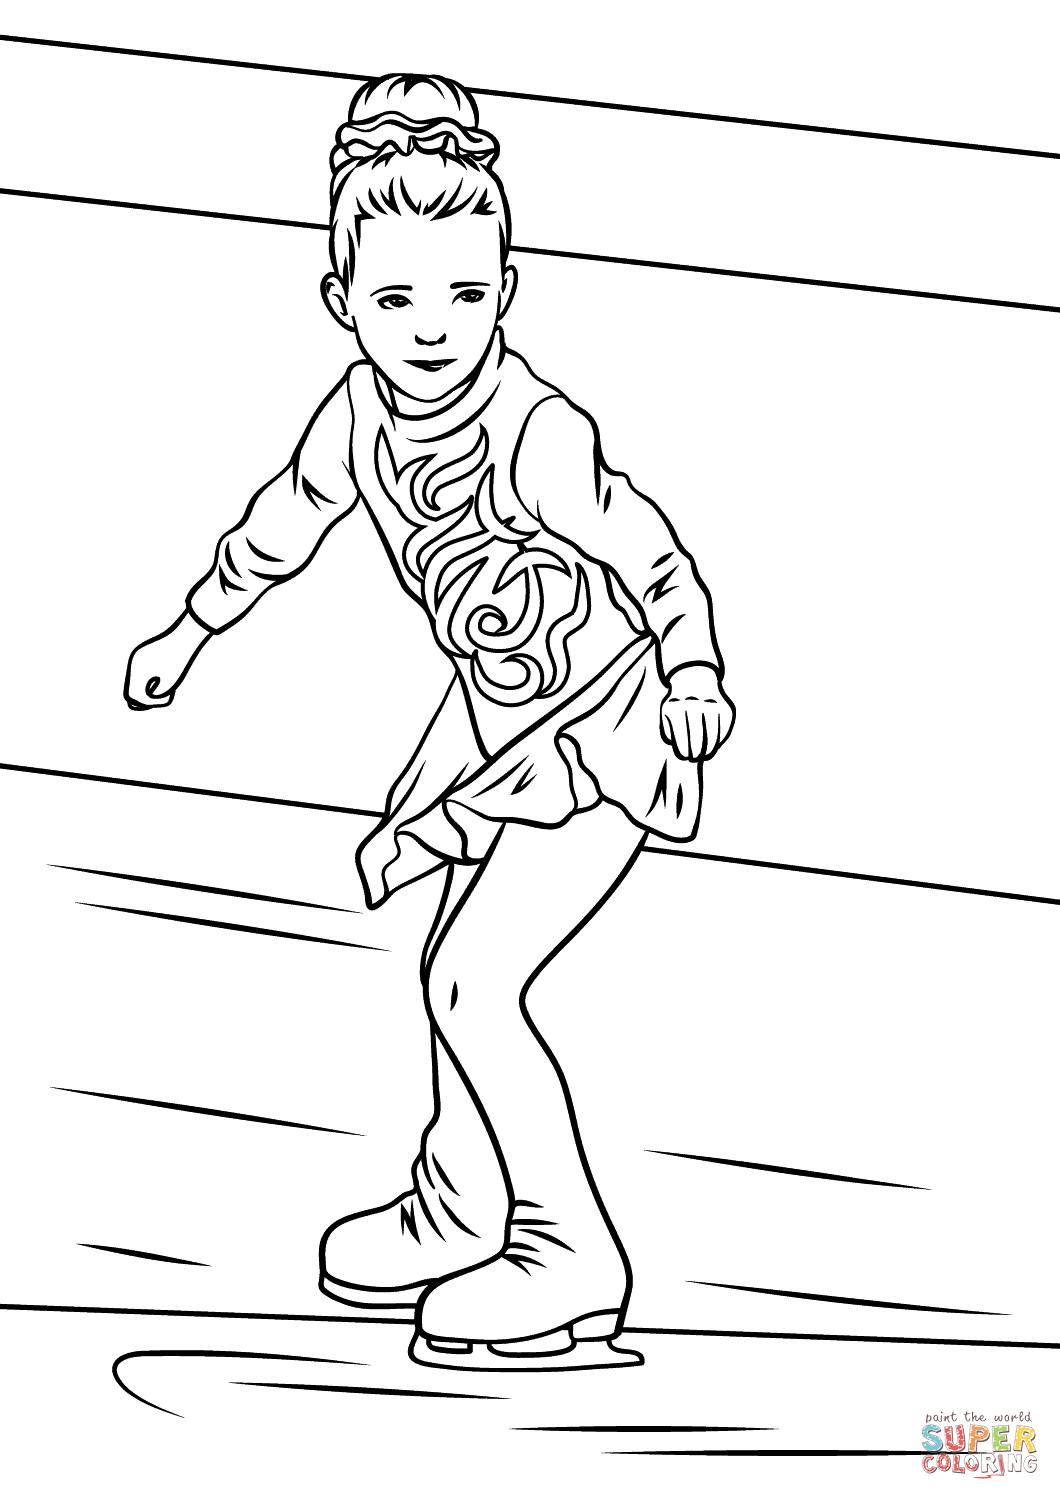 Girl Ice Skater Coloring Page Free Printable Coloring Pages